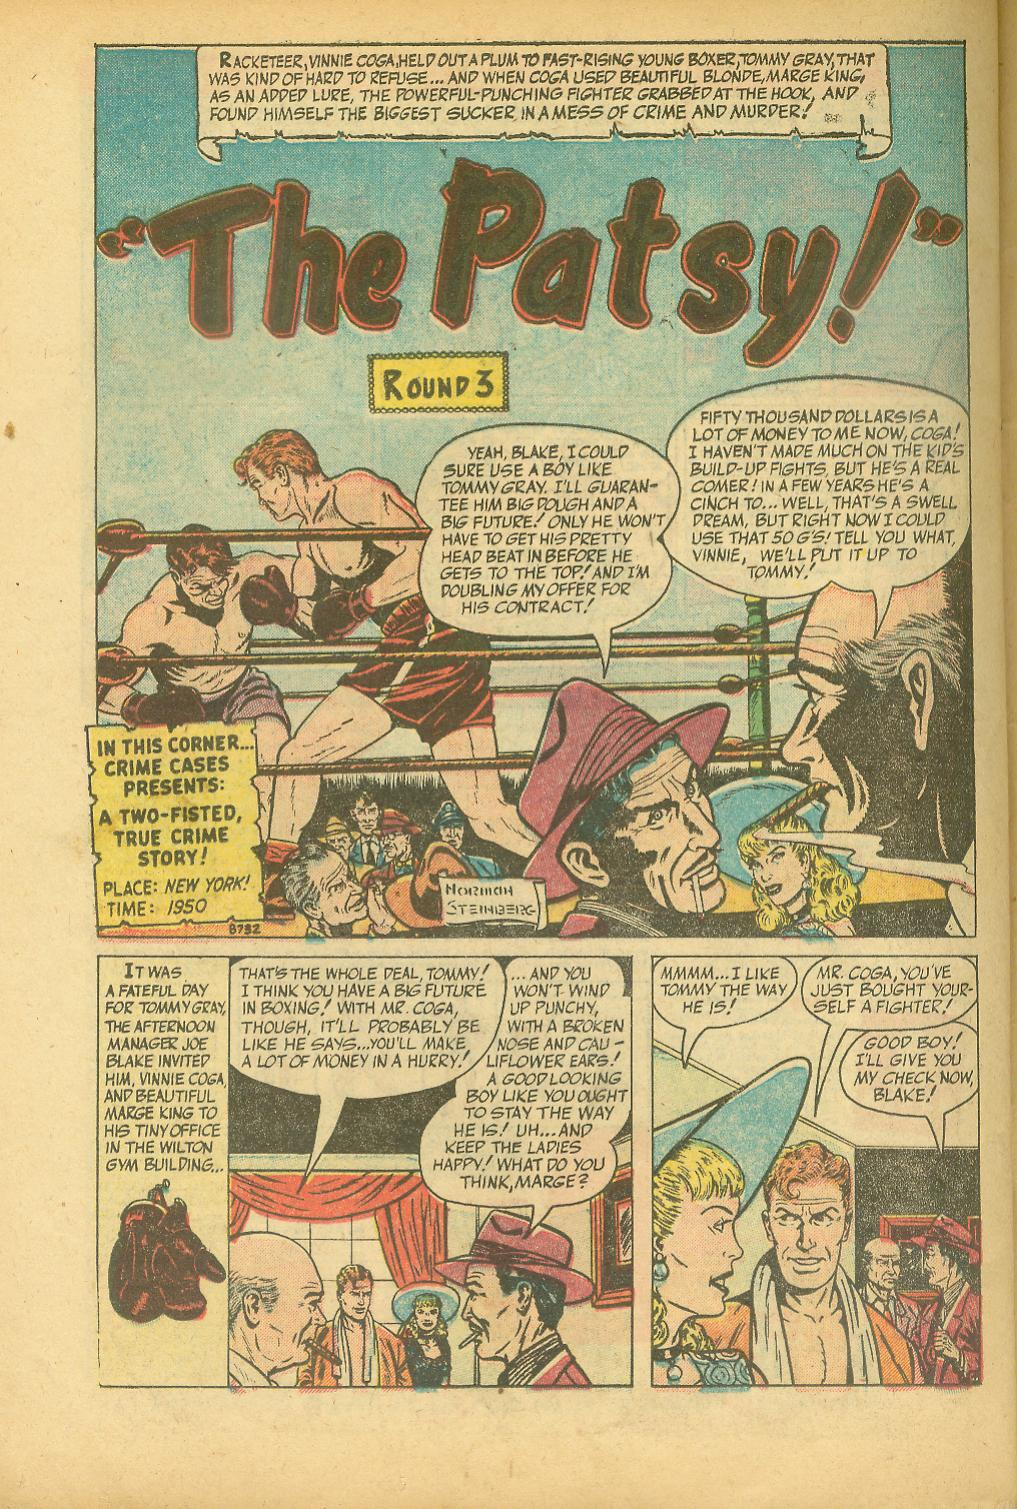 8732 The Patsy! Page 1